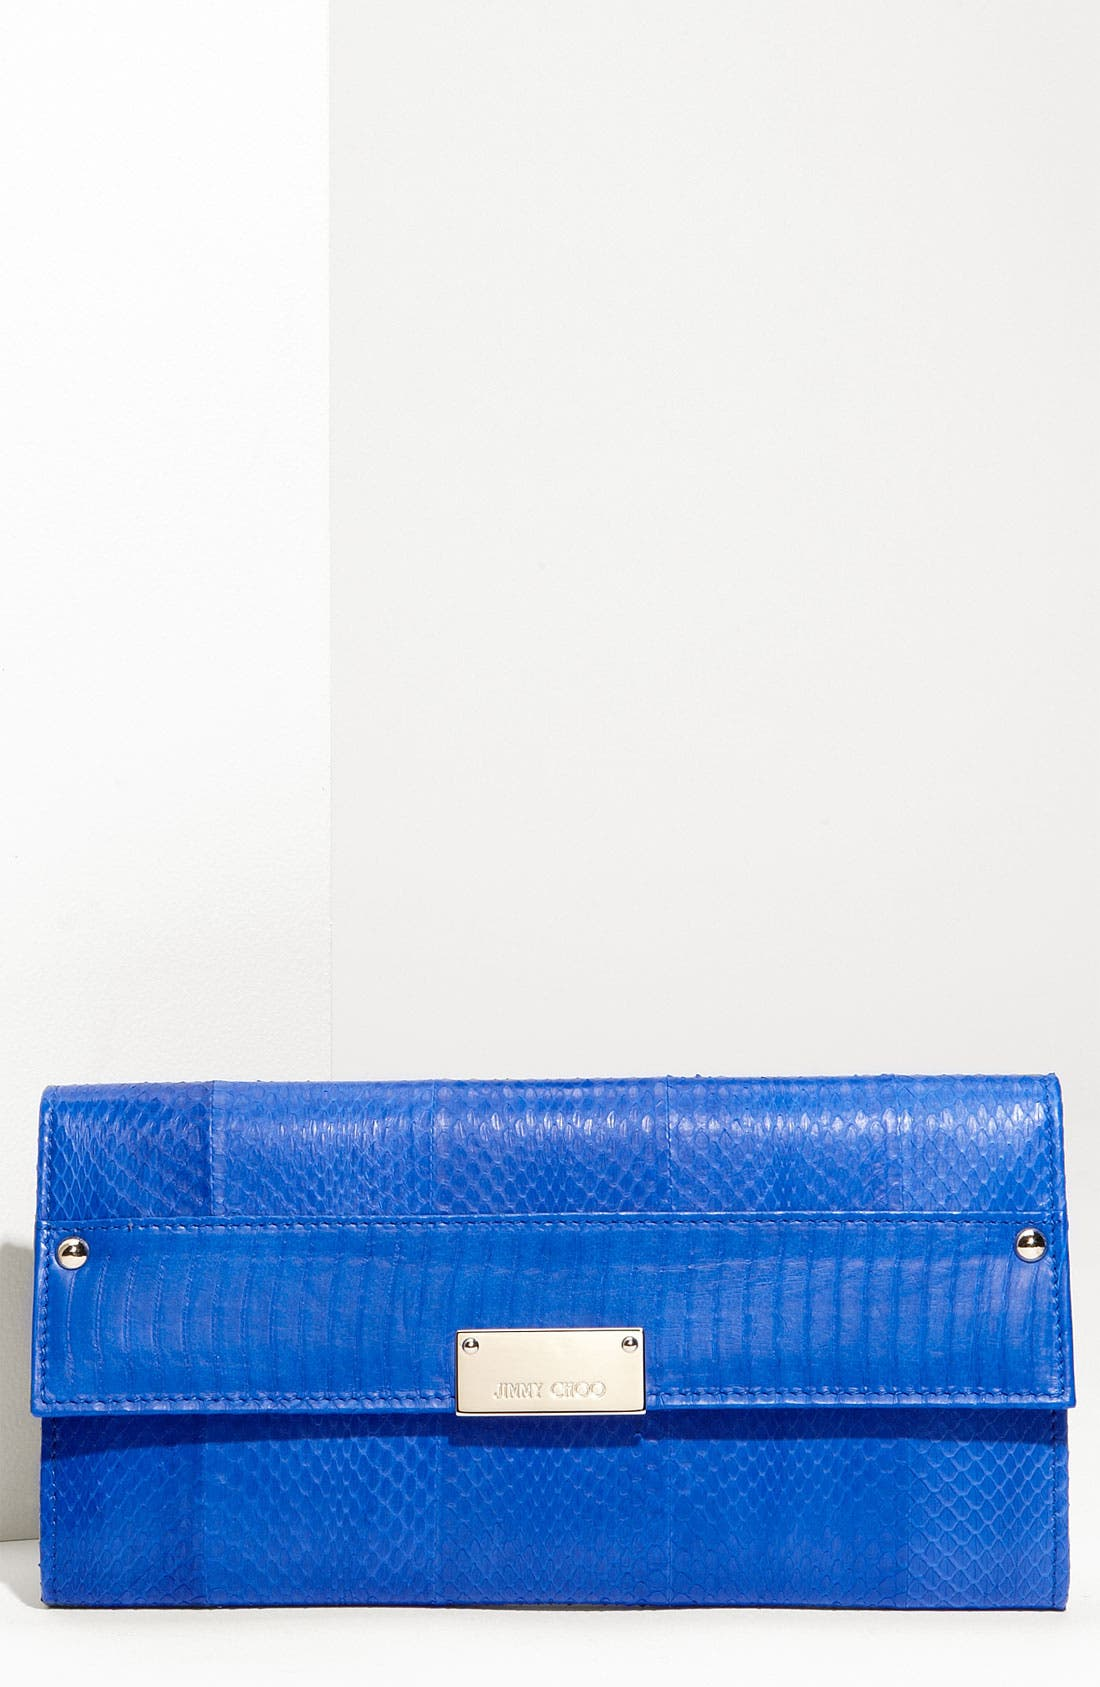 Main Image - Jimmy Choo 'Reese' Embossed Leather Clutch